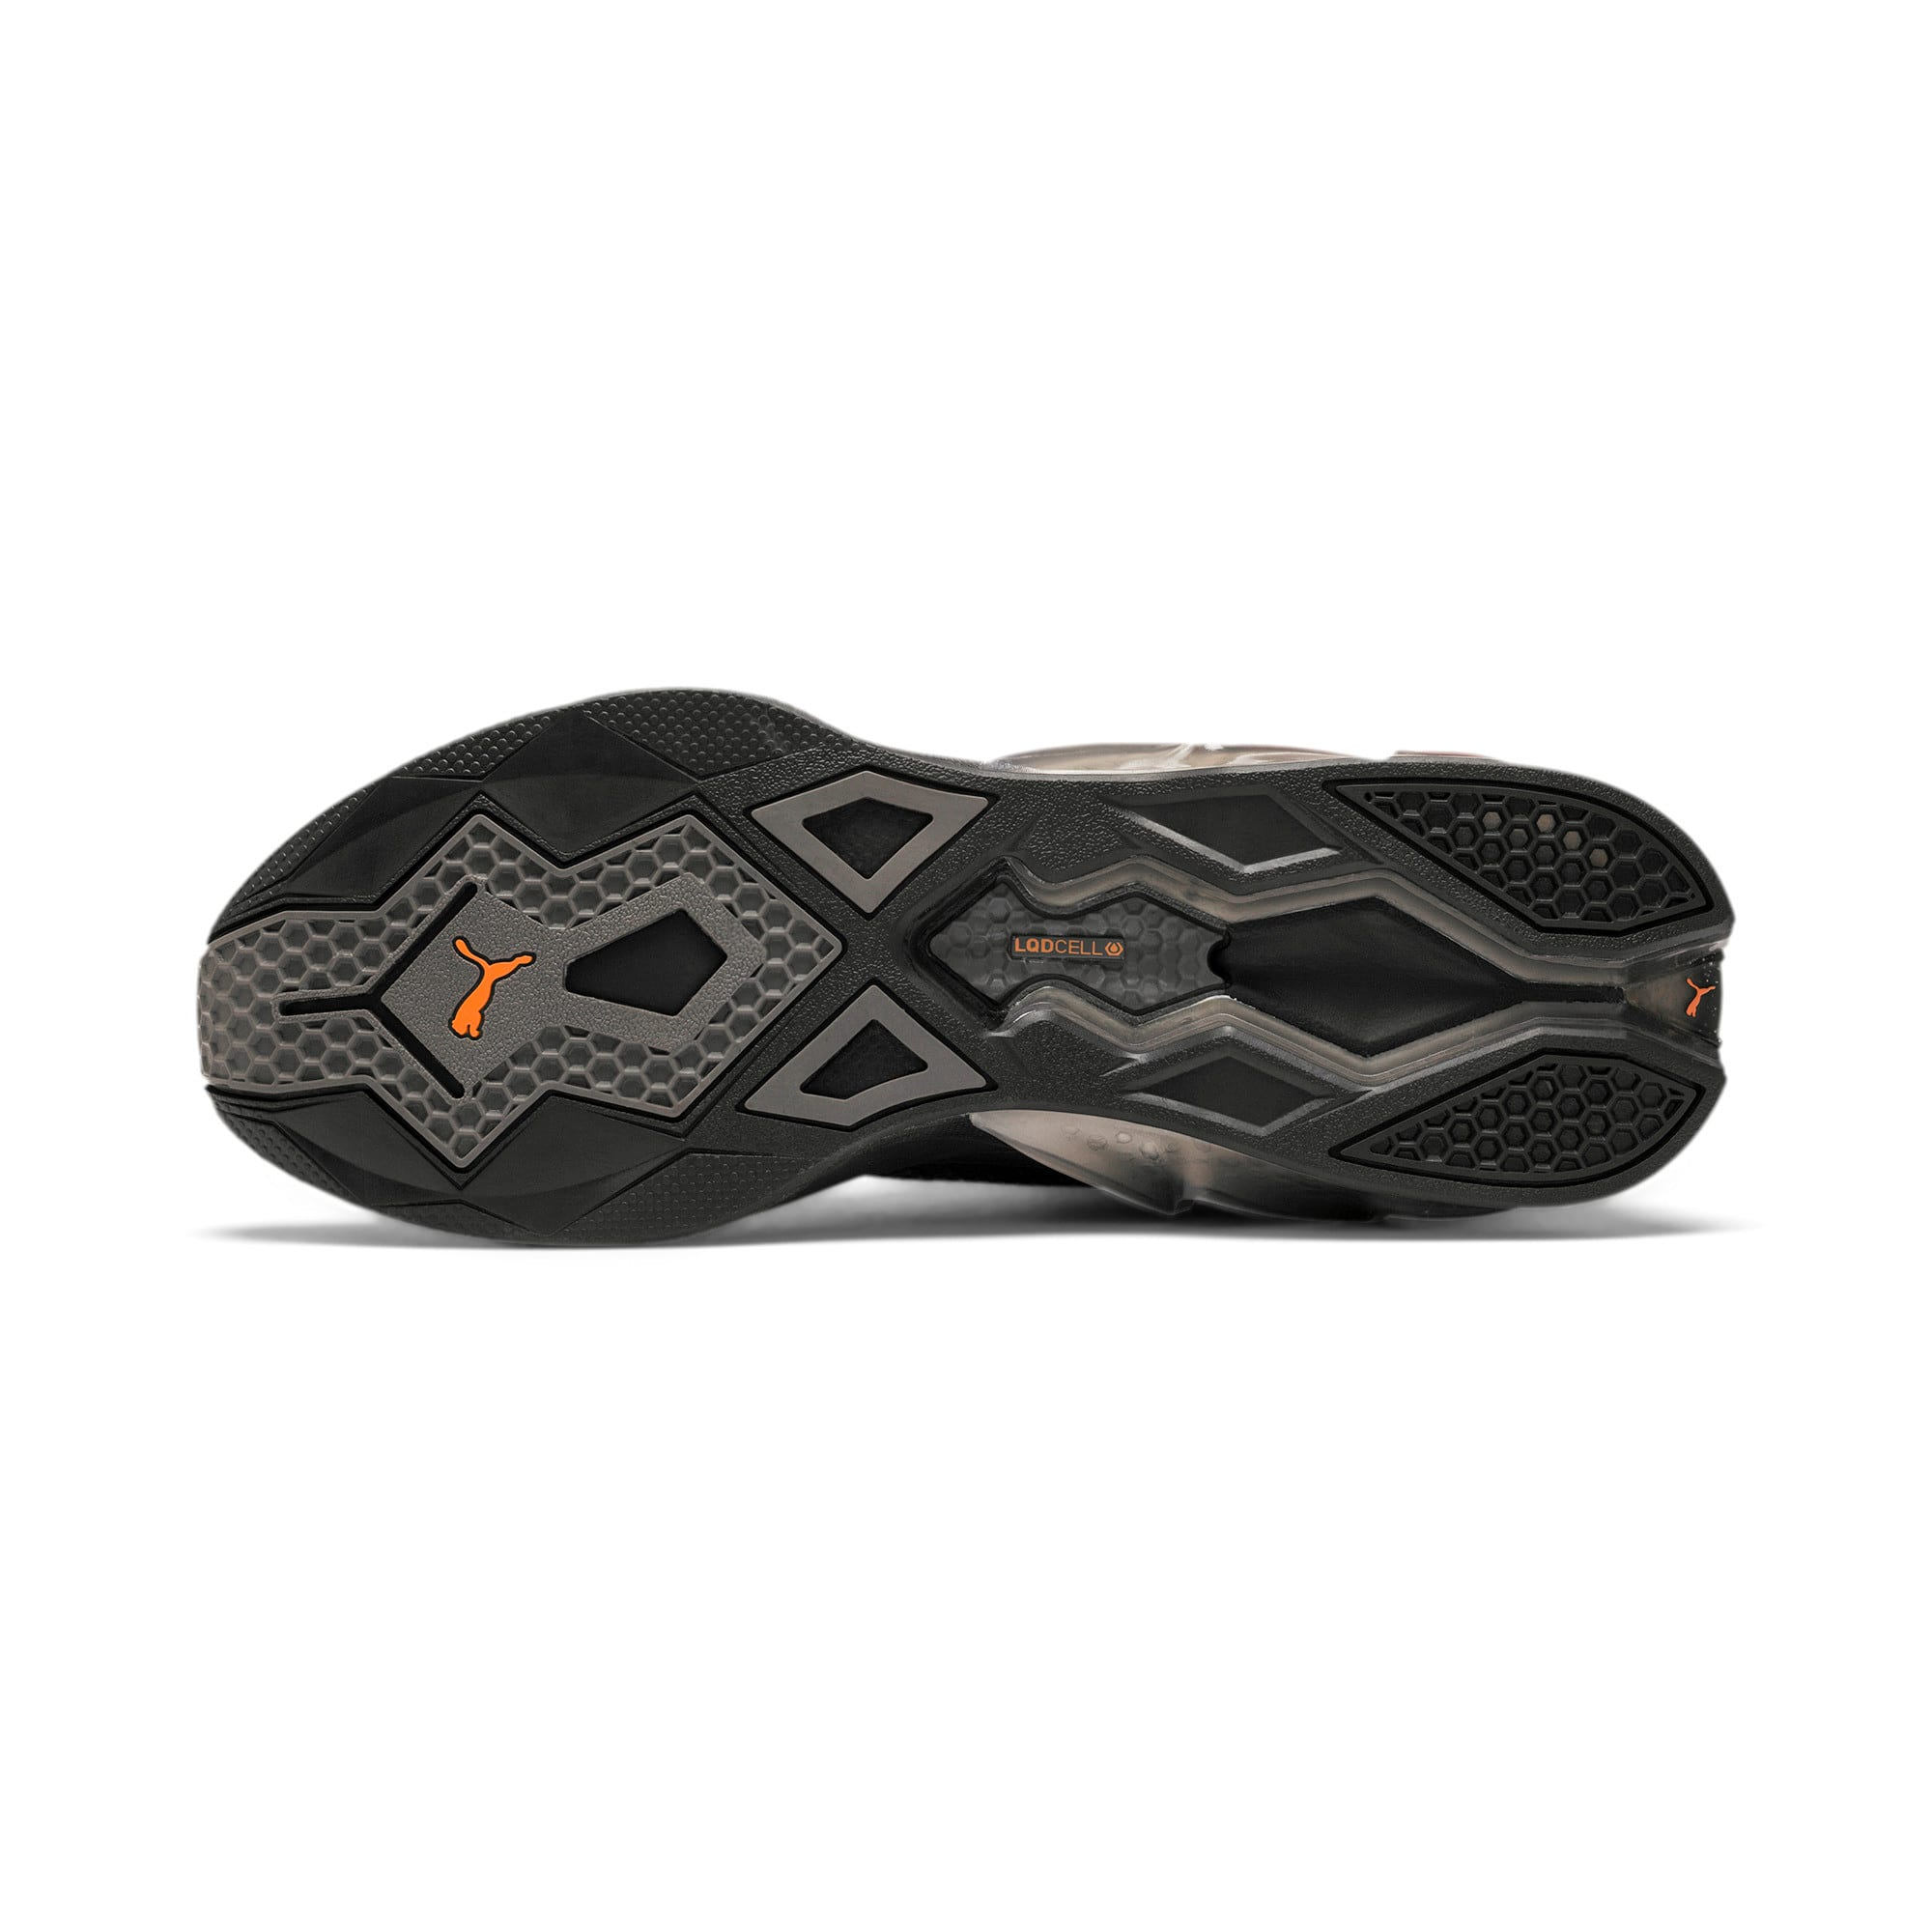 Thumbnail 5 of LQDCELL Origin Terrain Herren Trainingsschuhe, Puma Black-Jaffa Orange, medium